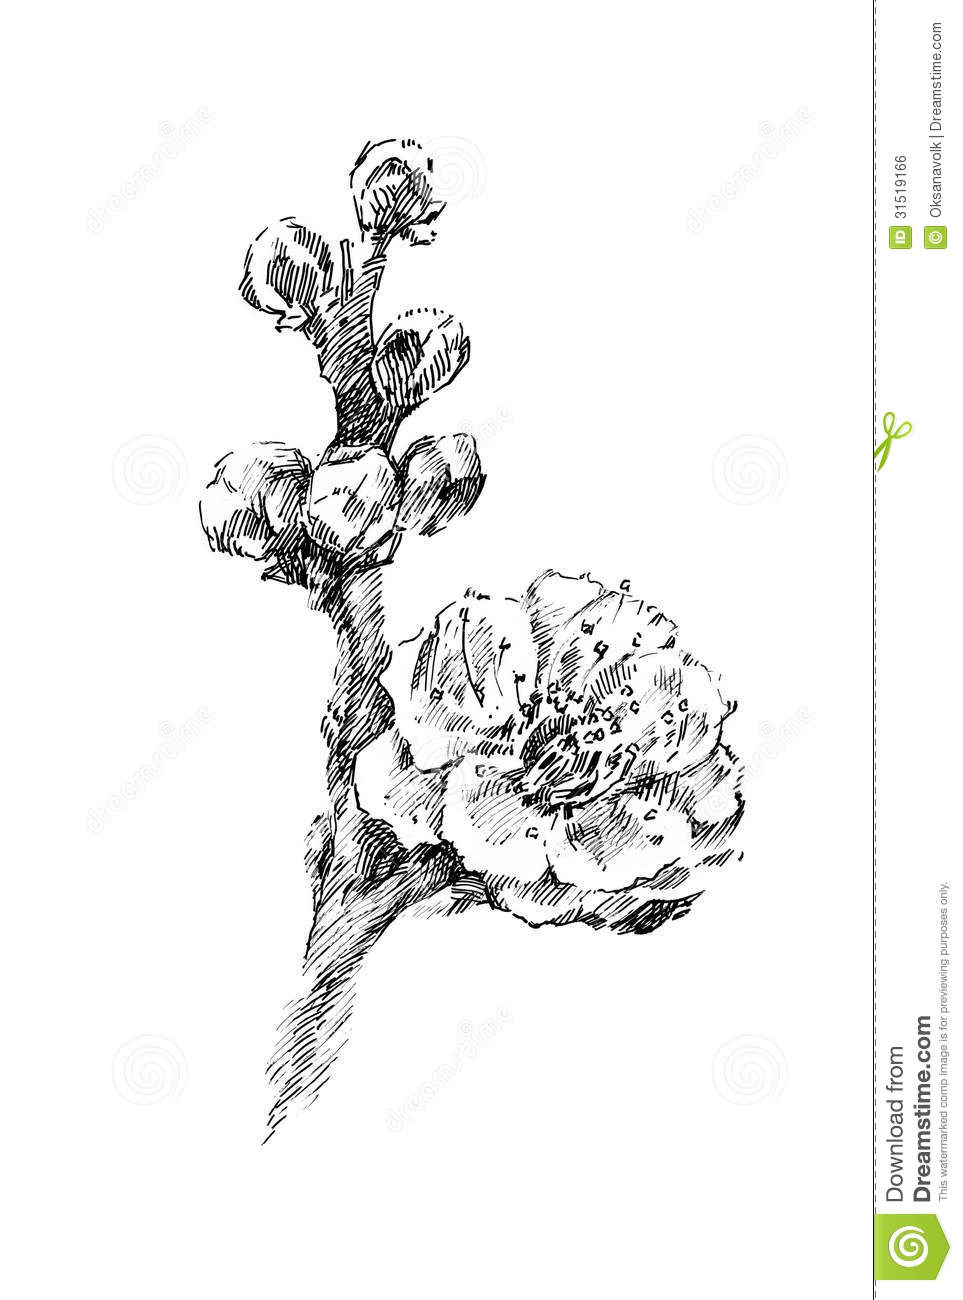 Decorative Ornament Vector 3599396 in addition Magnolia Blossoms Drawing Gm522618517 50902818 as well Stock Photos Detailed Victorian Floral Frame Image5580483 further Royalty Free Stock Image Beautiful Cherry Tree Flower Blooming Illustration Sketch Graphic Black White Ink Image31519166 furthermore Flower Rose Outline Clipart. on stock illustration branch with flowers vector black